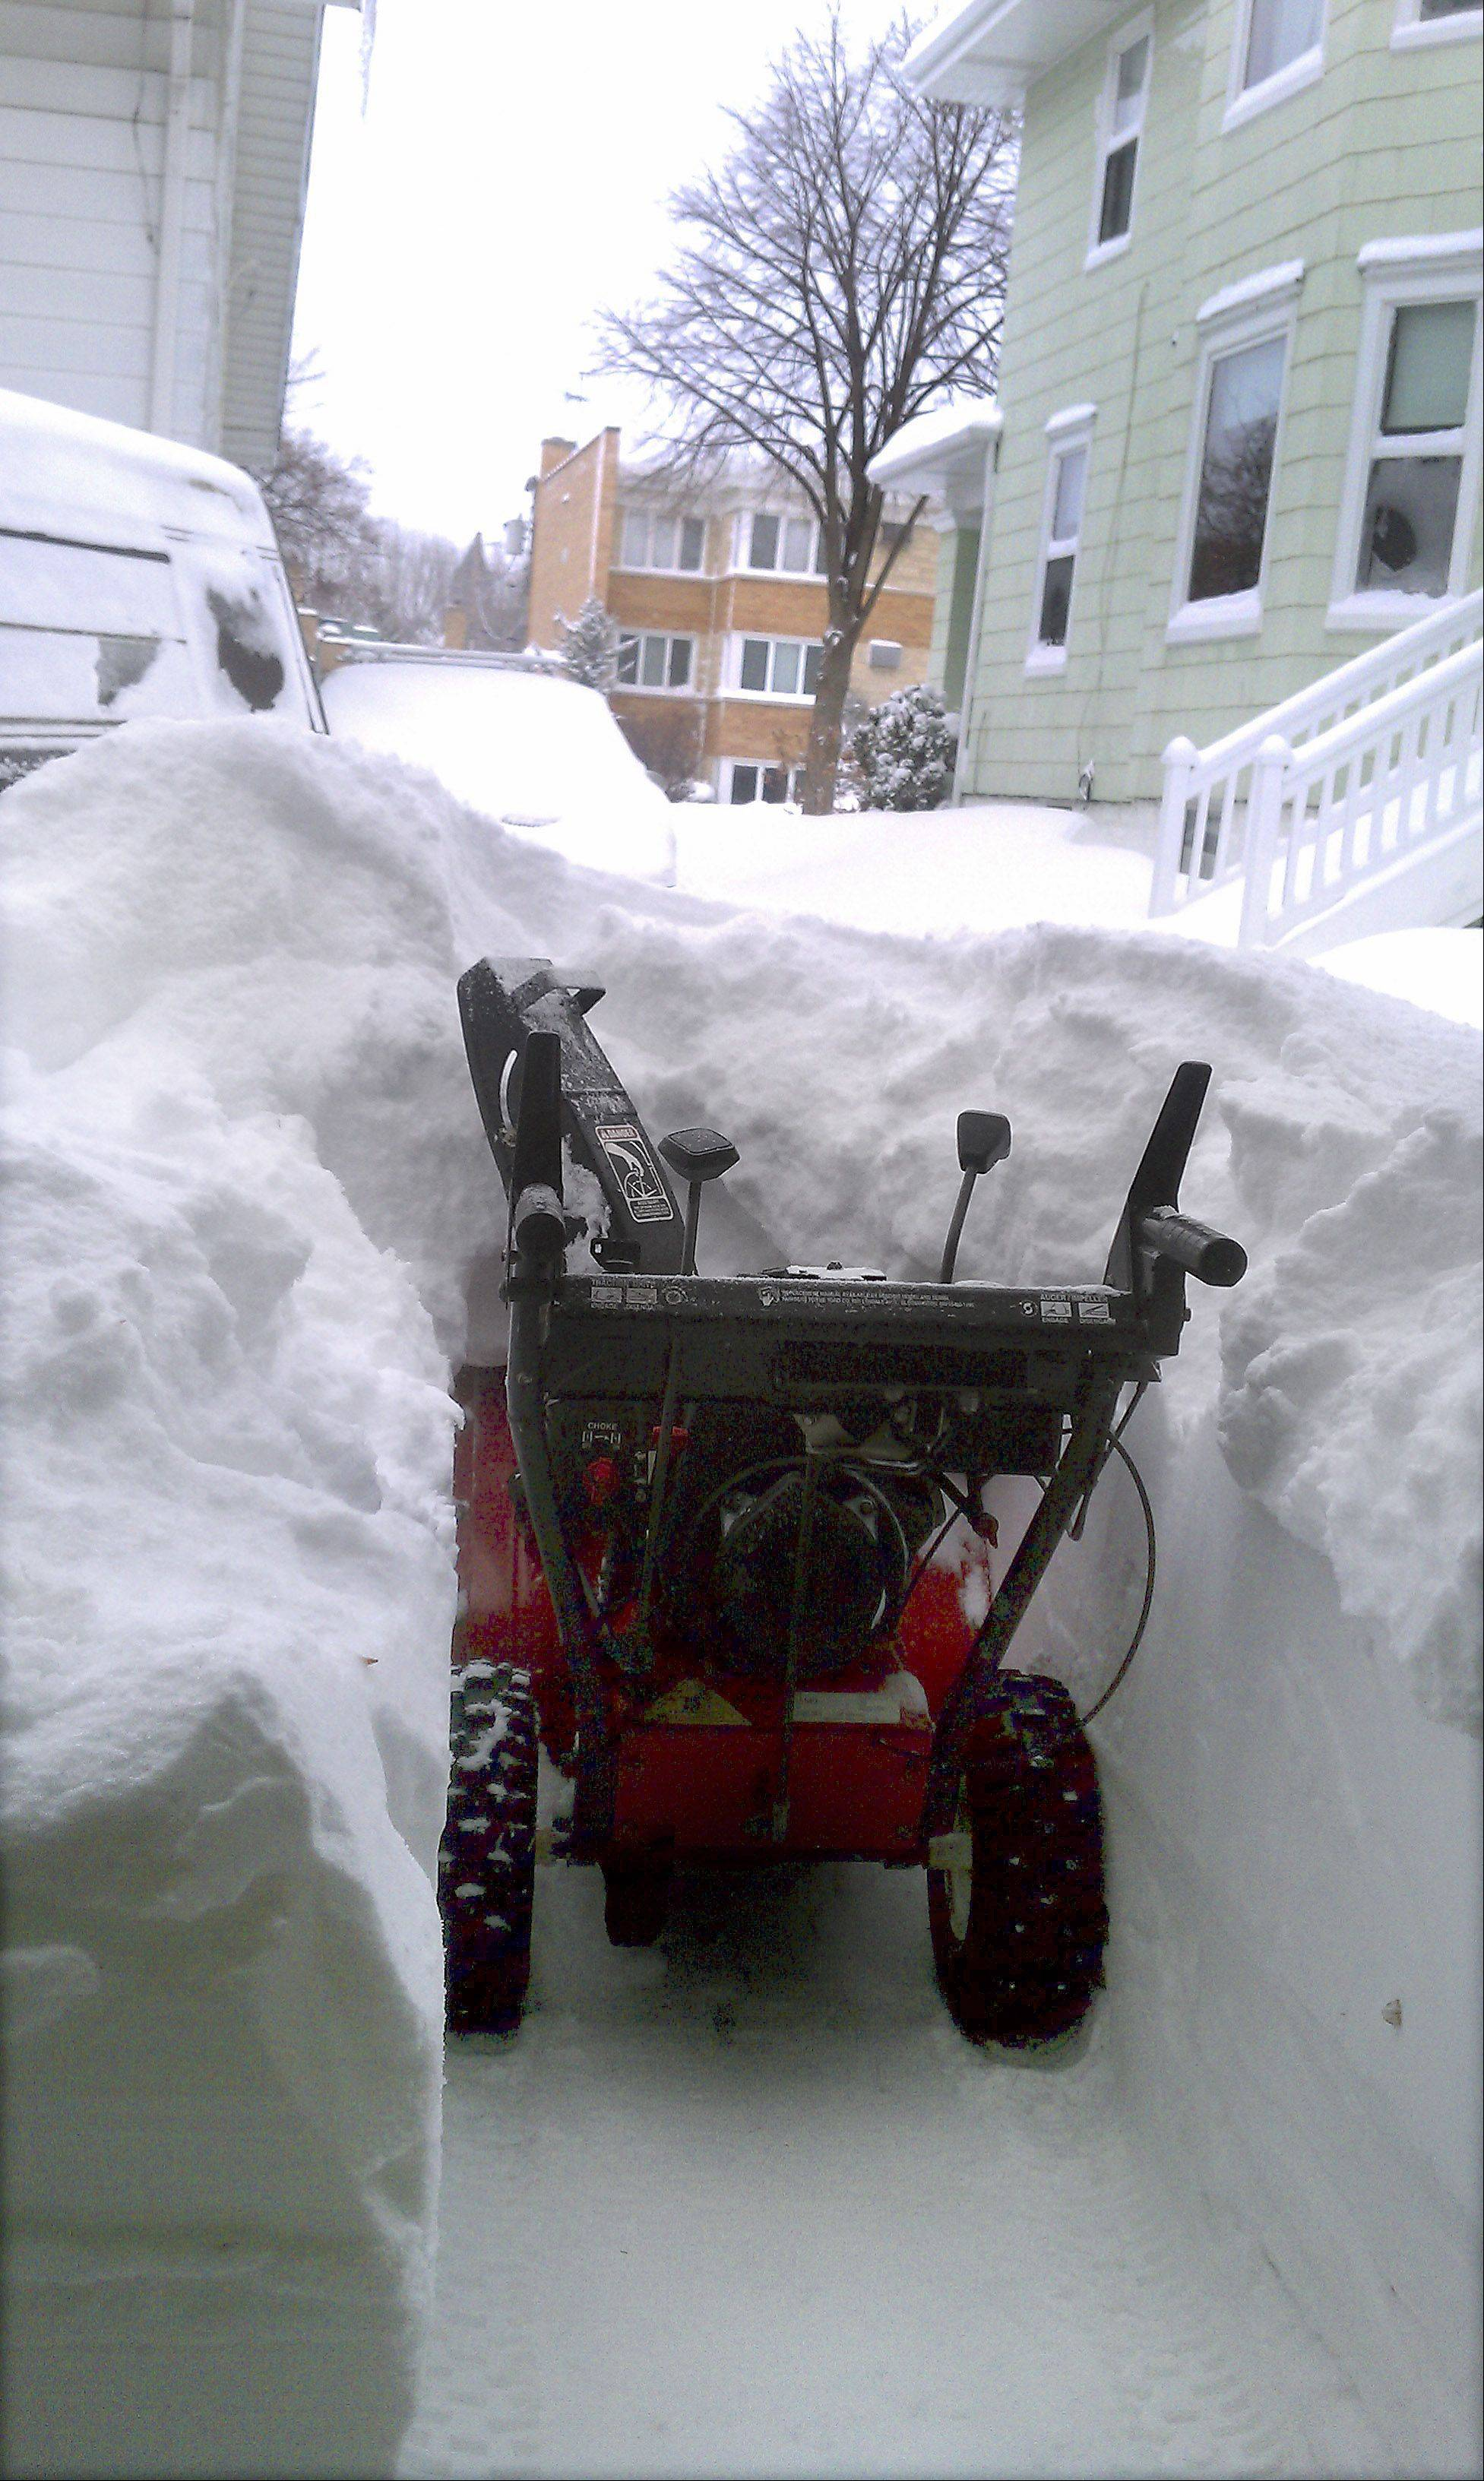 Getting to the snowblower was nearly as hard as clearing the driveway the morning of the blizzard of 2011.